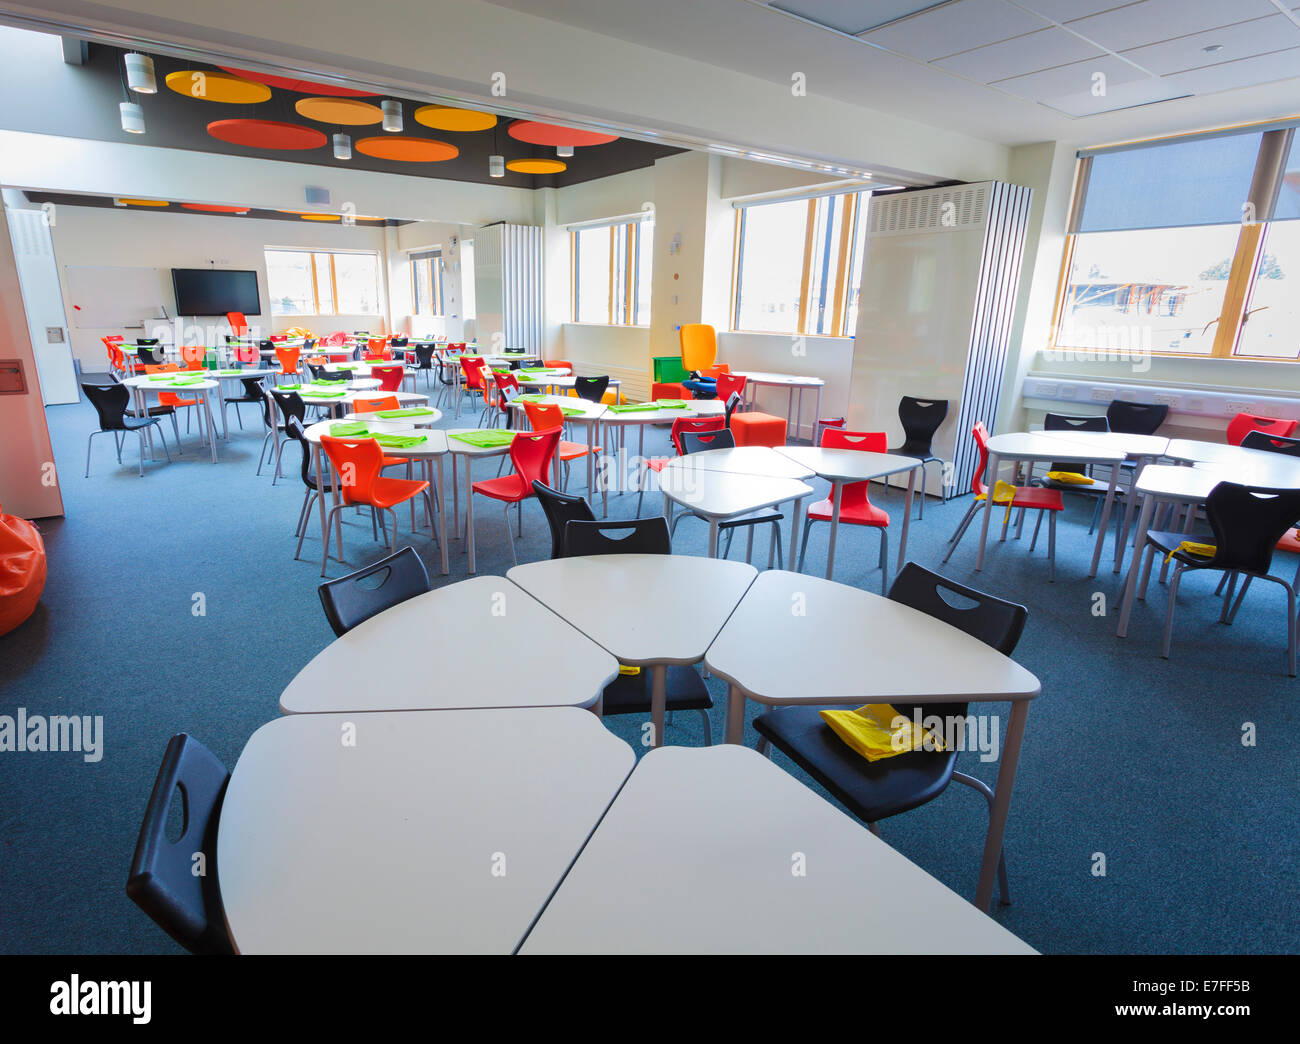 Modern College Classroom ~ Unoccupied modern school classroom with desks in a circle